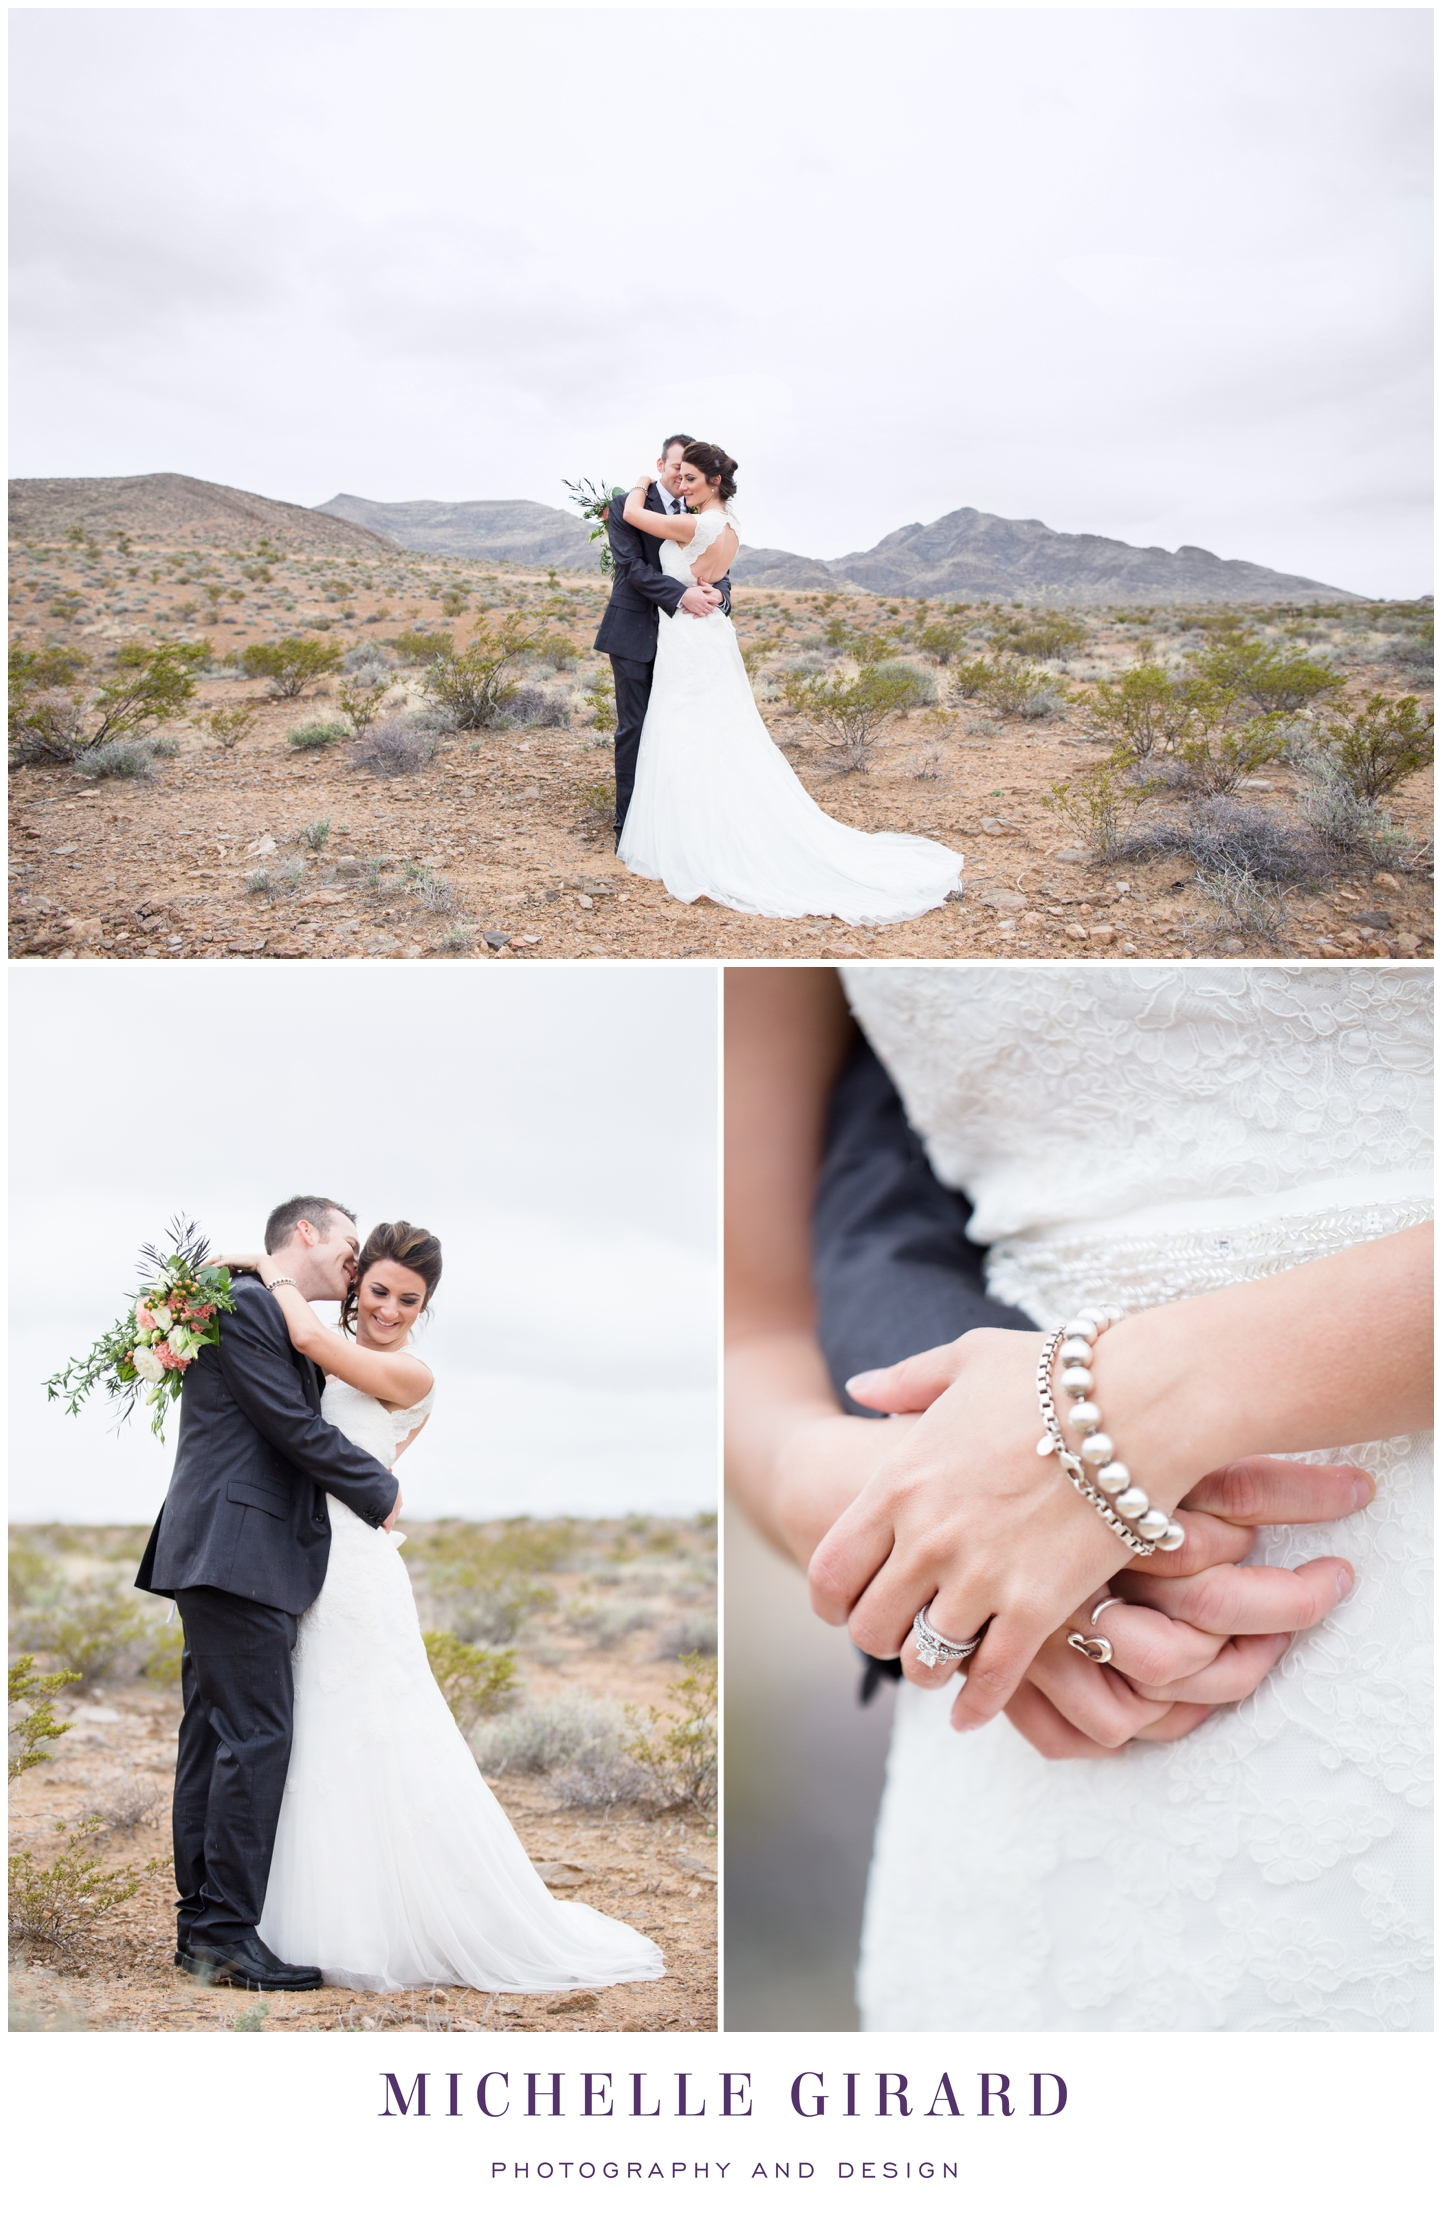 las-vegas-desert-wedding-bride-groom-photography-nevada-michelle-girard-14.jpg